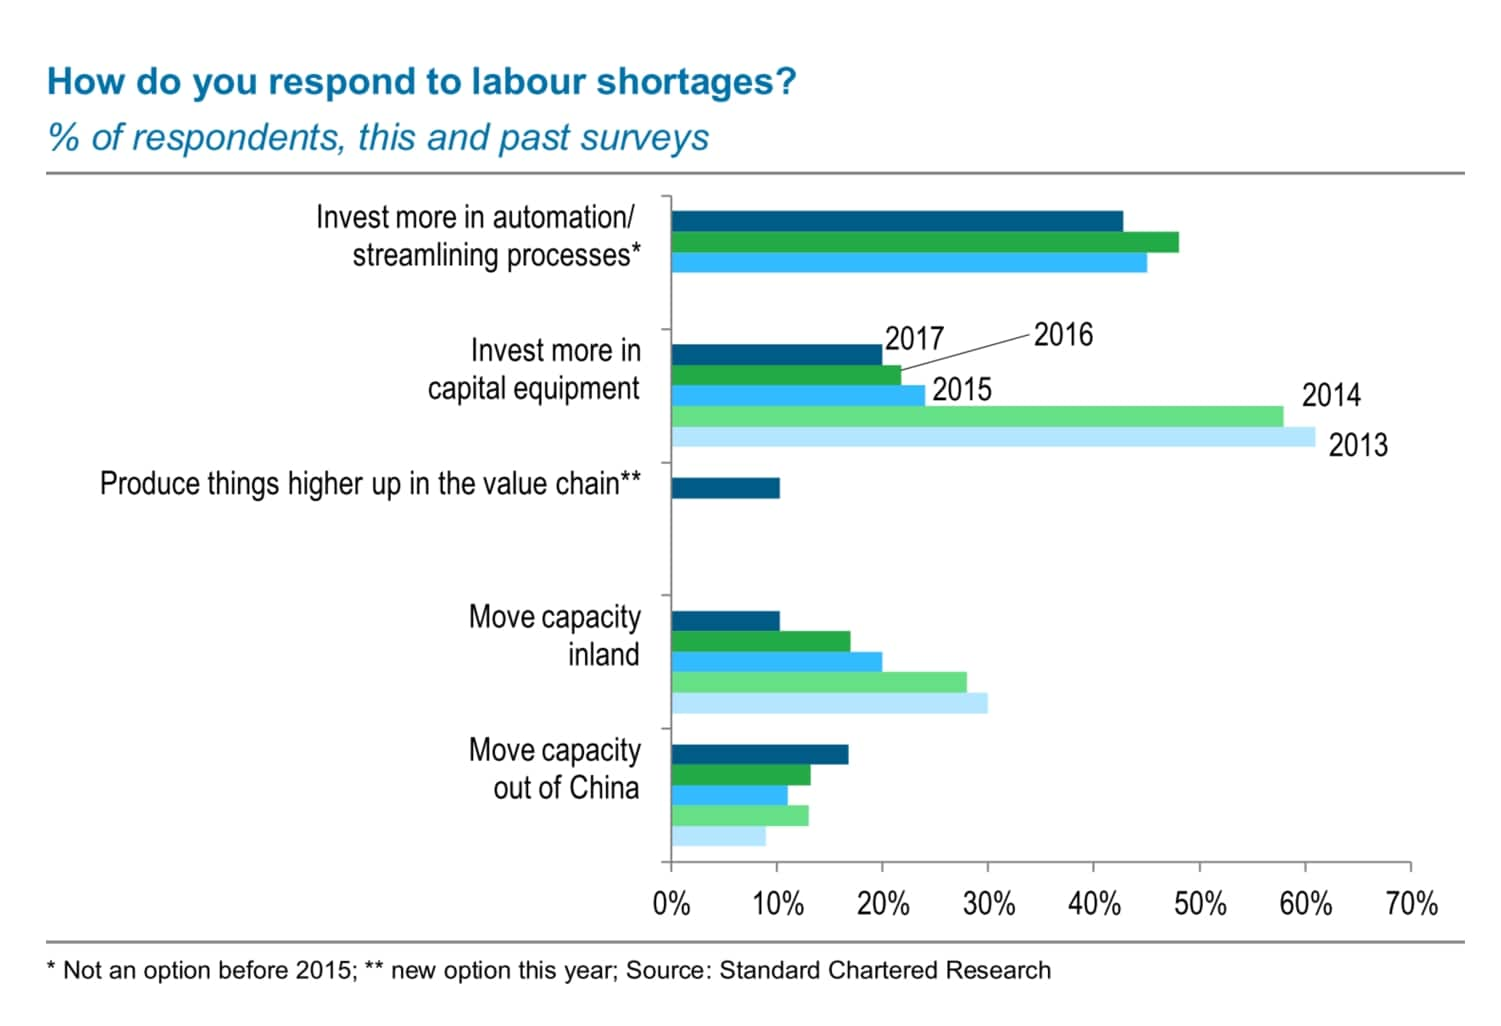 Graph showing % of respondents and how they respond to labour shortages